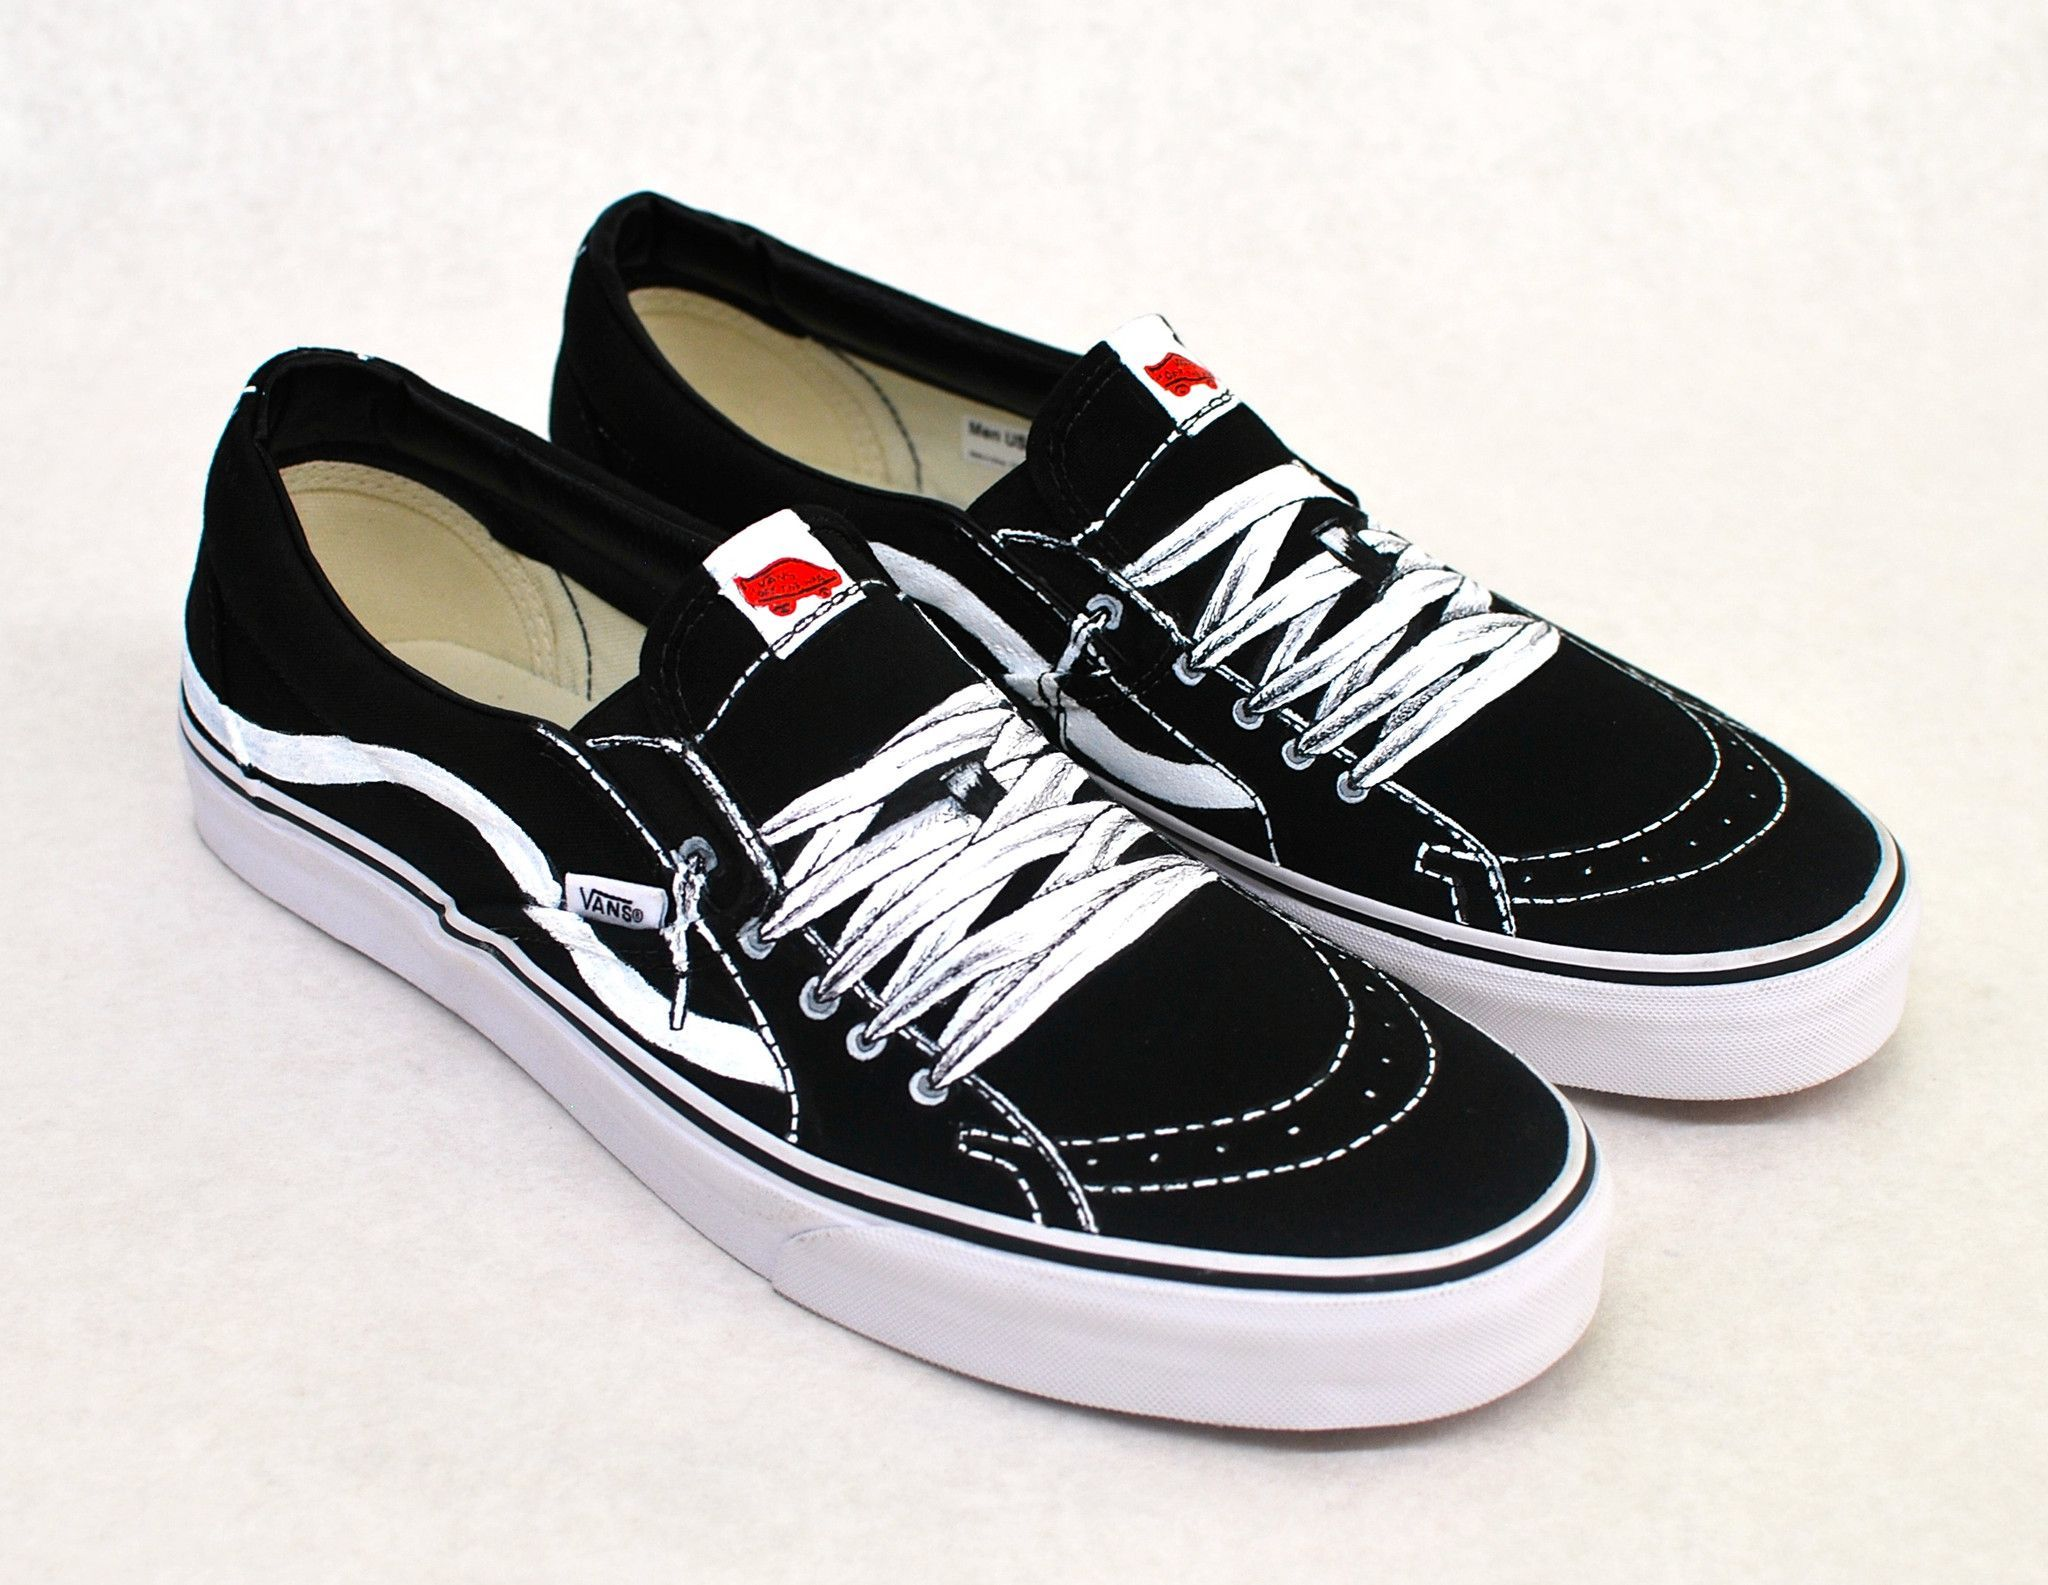 36e6c738e62b32 These one-of-a-kind hand-painted Black Canvas Slip On Vans shoes are  painted with laces on top to look like Vans Sk8 Mids. I can paint a pair of  Vans slip ...